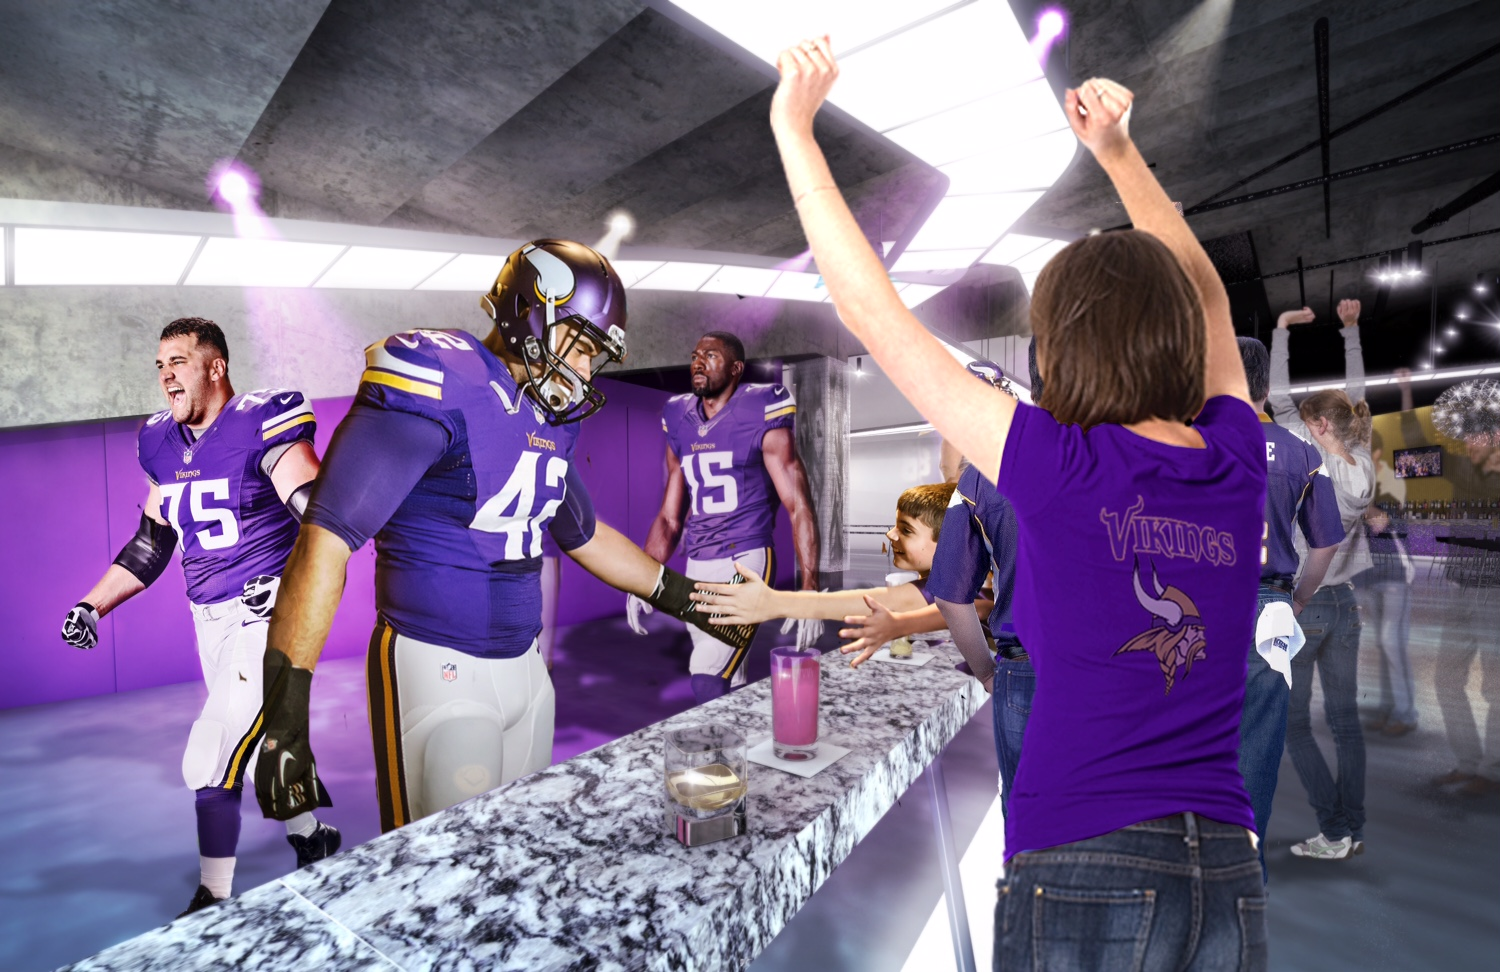 Vikings football players at the bar